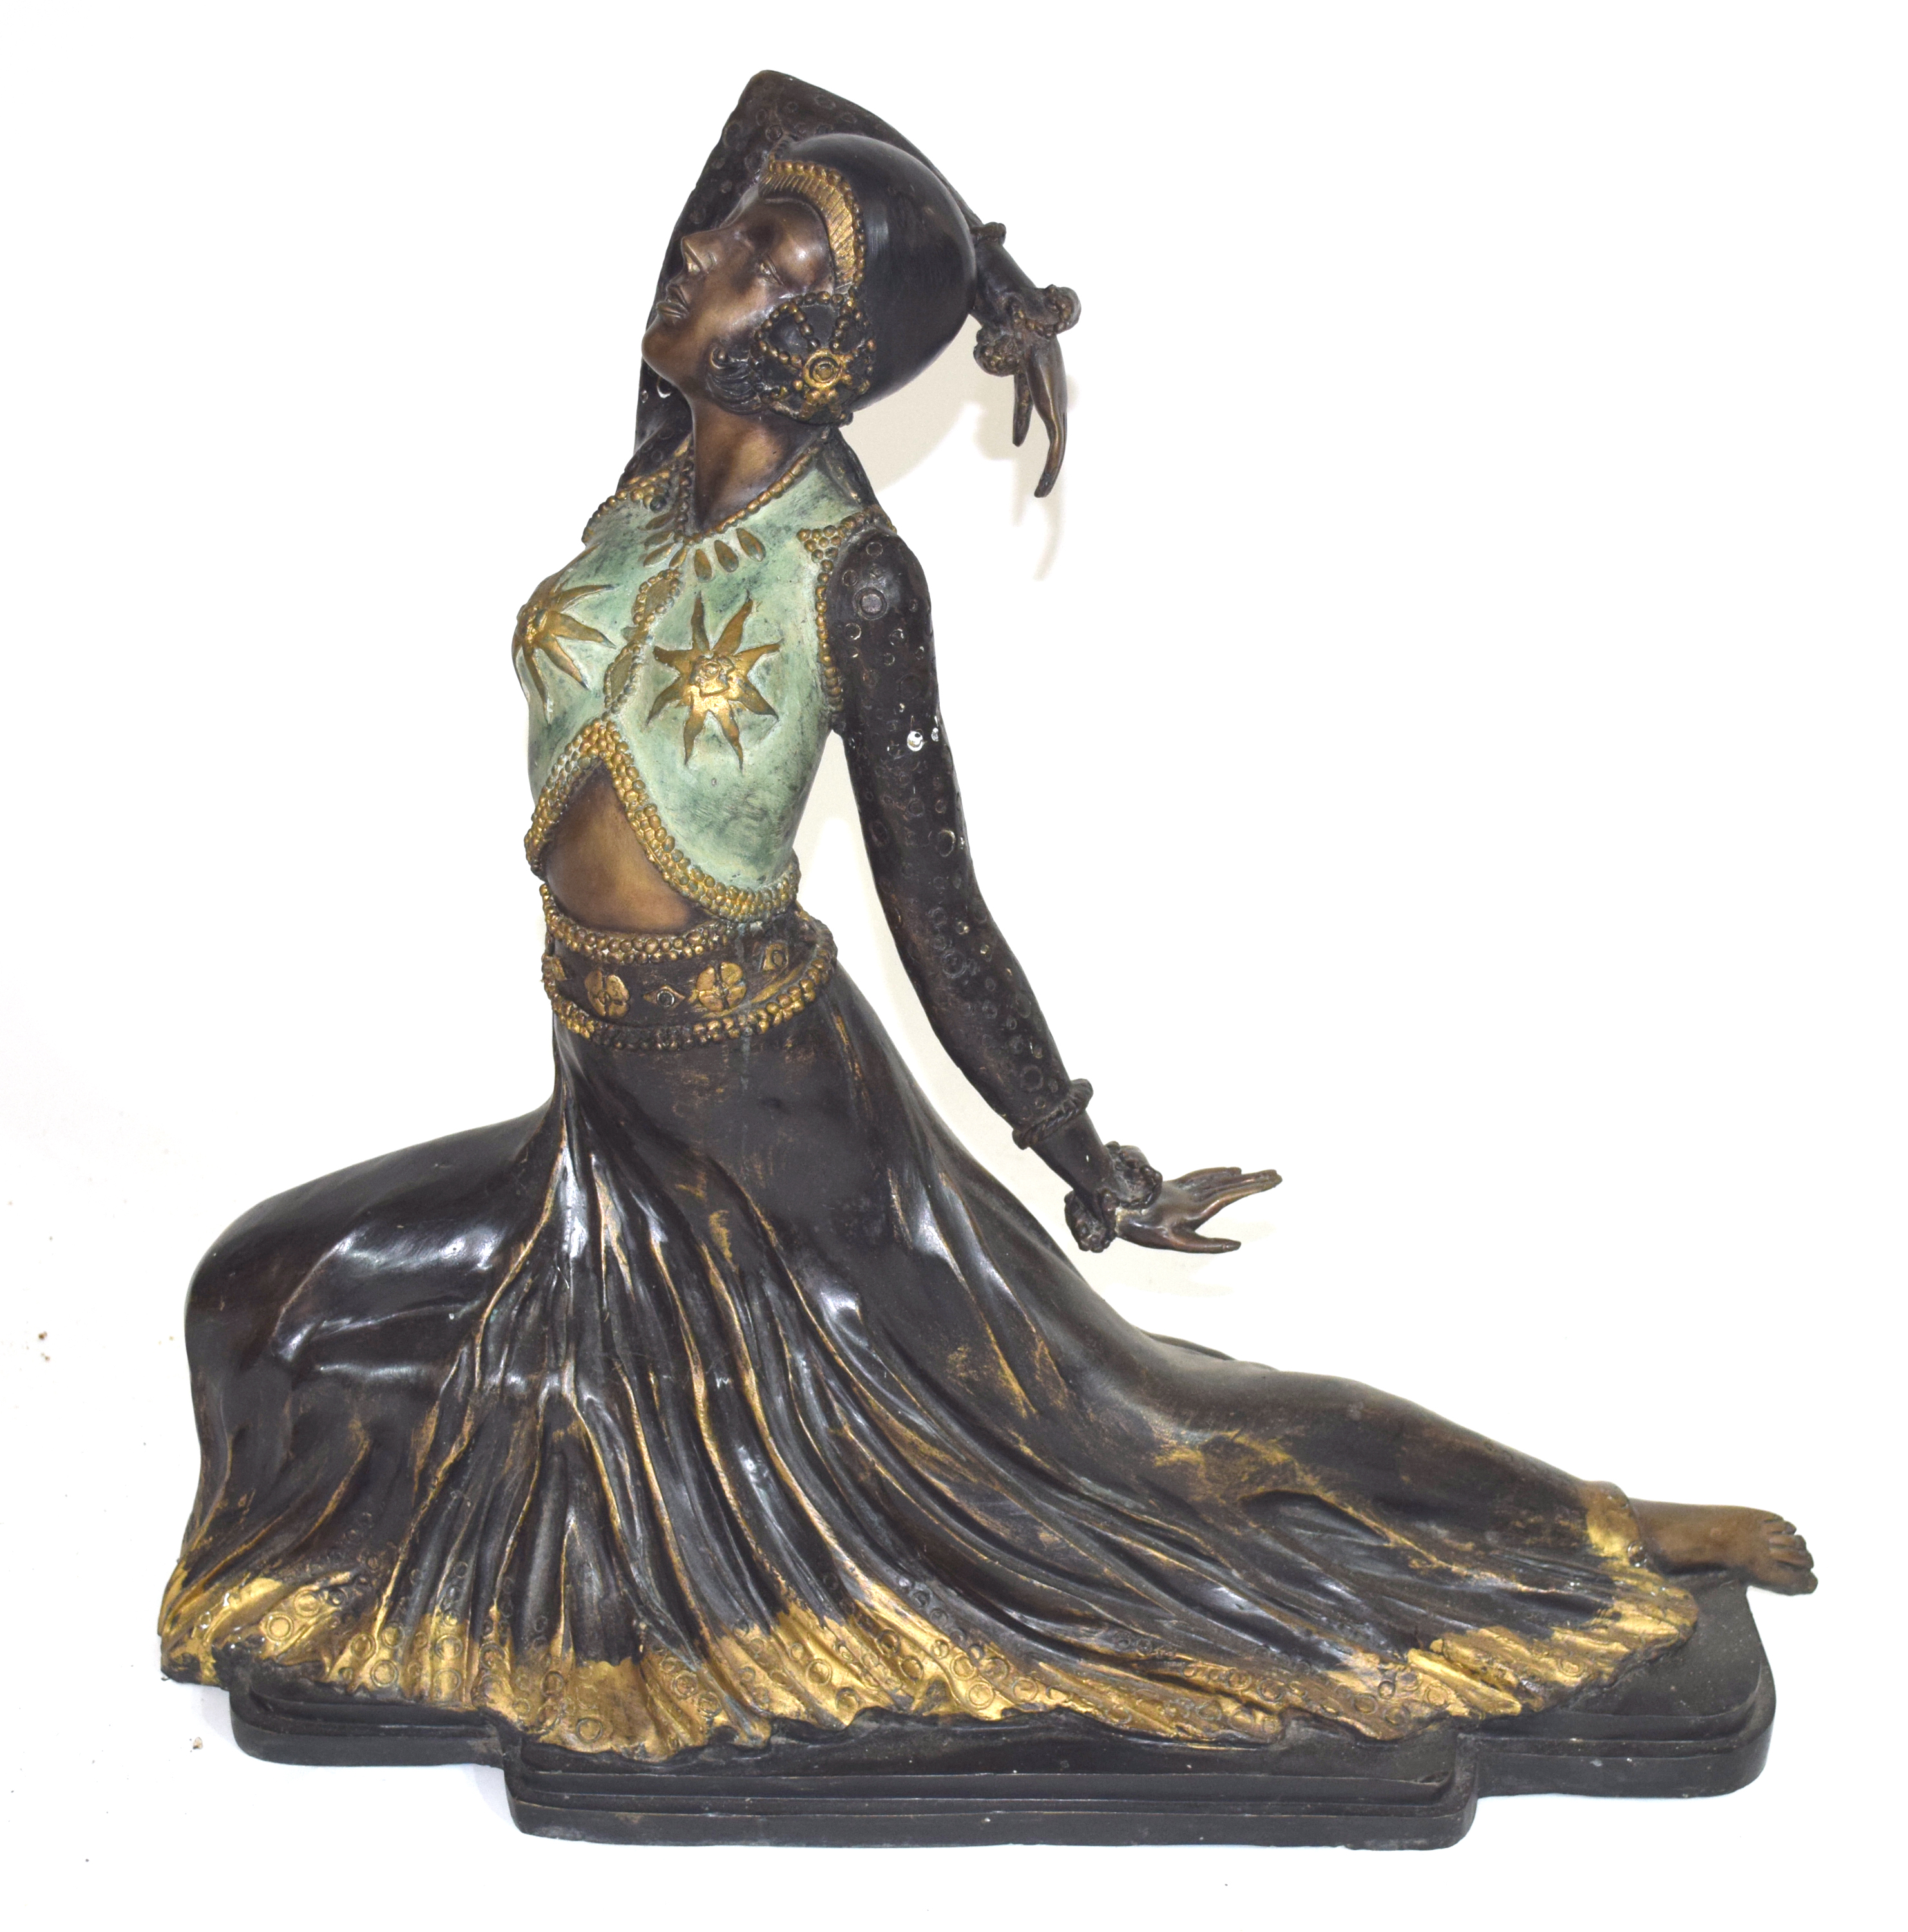 Large and impressive bronze cast model of a Far Eastern, possibly Balinese, dancer,early to mid 20th